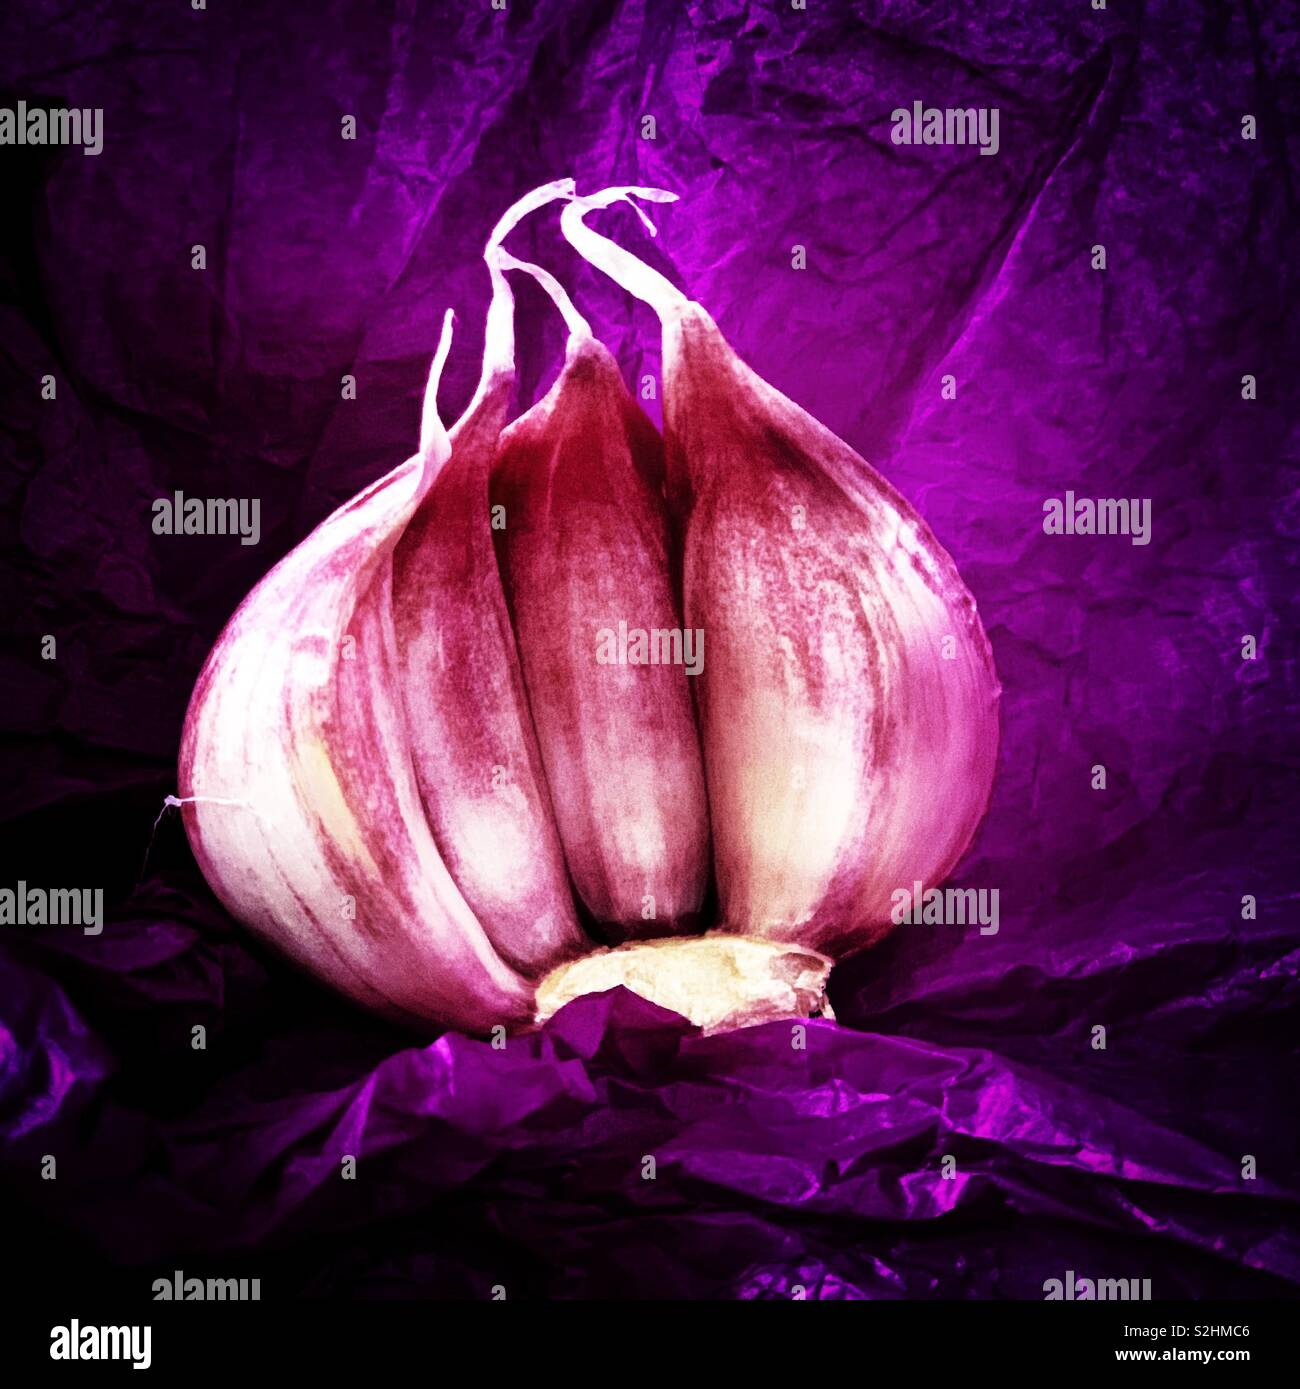 Purple Garlic - Stock Image